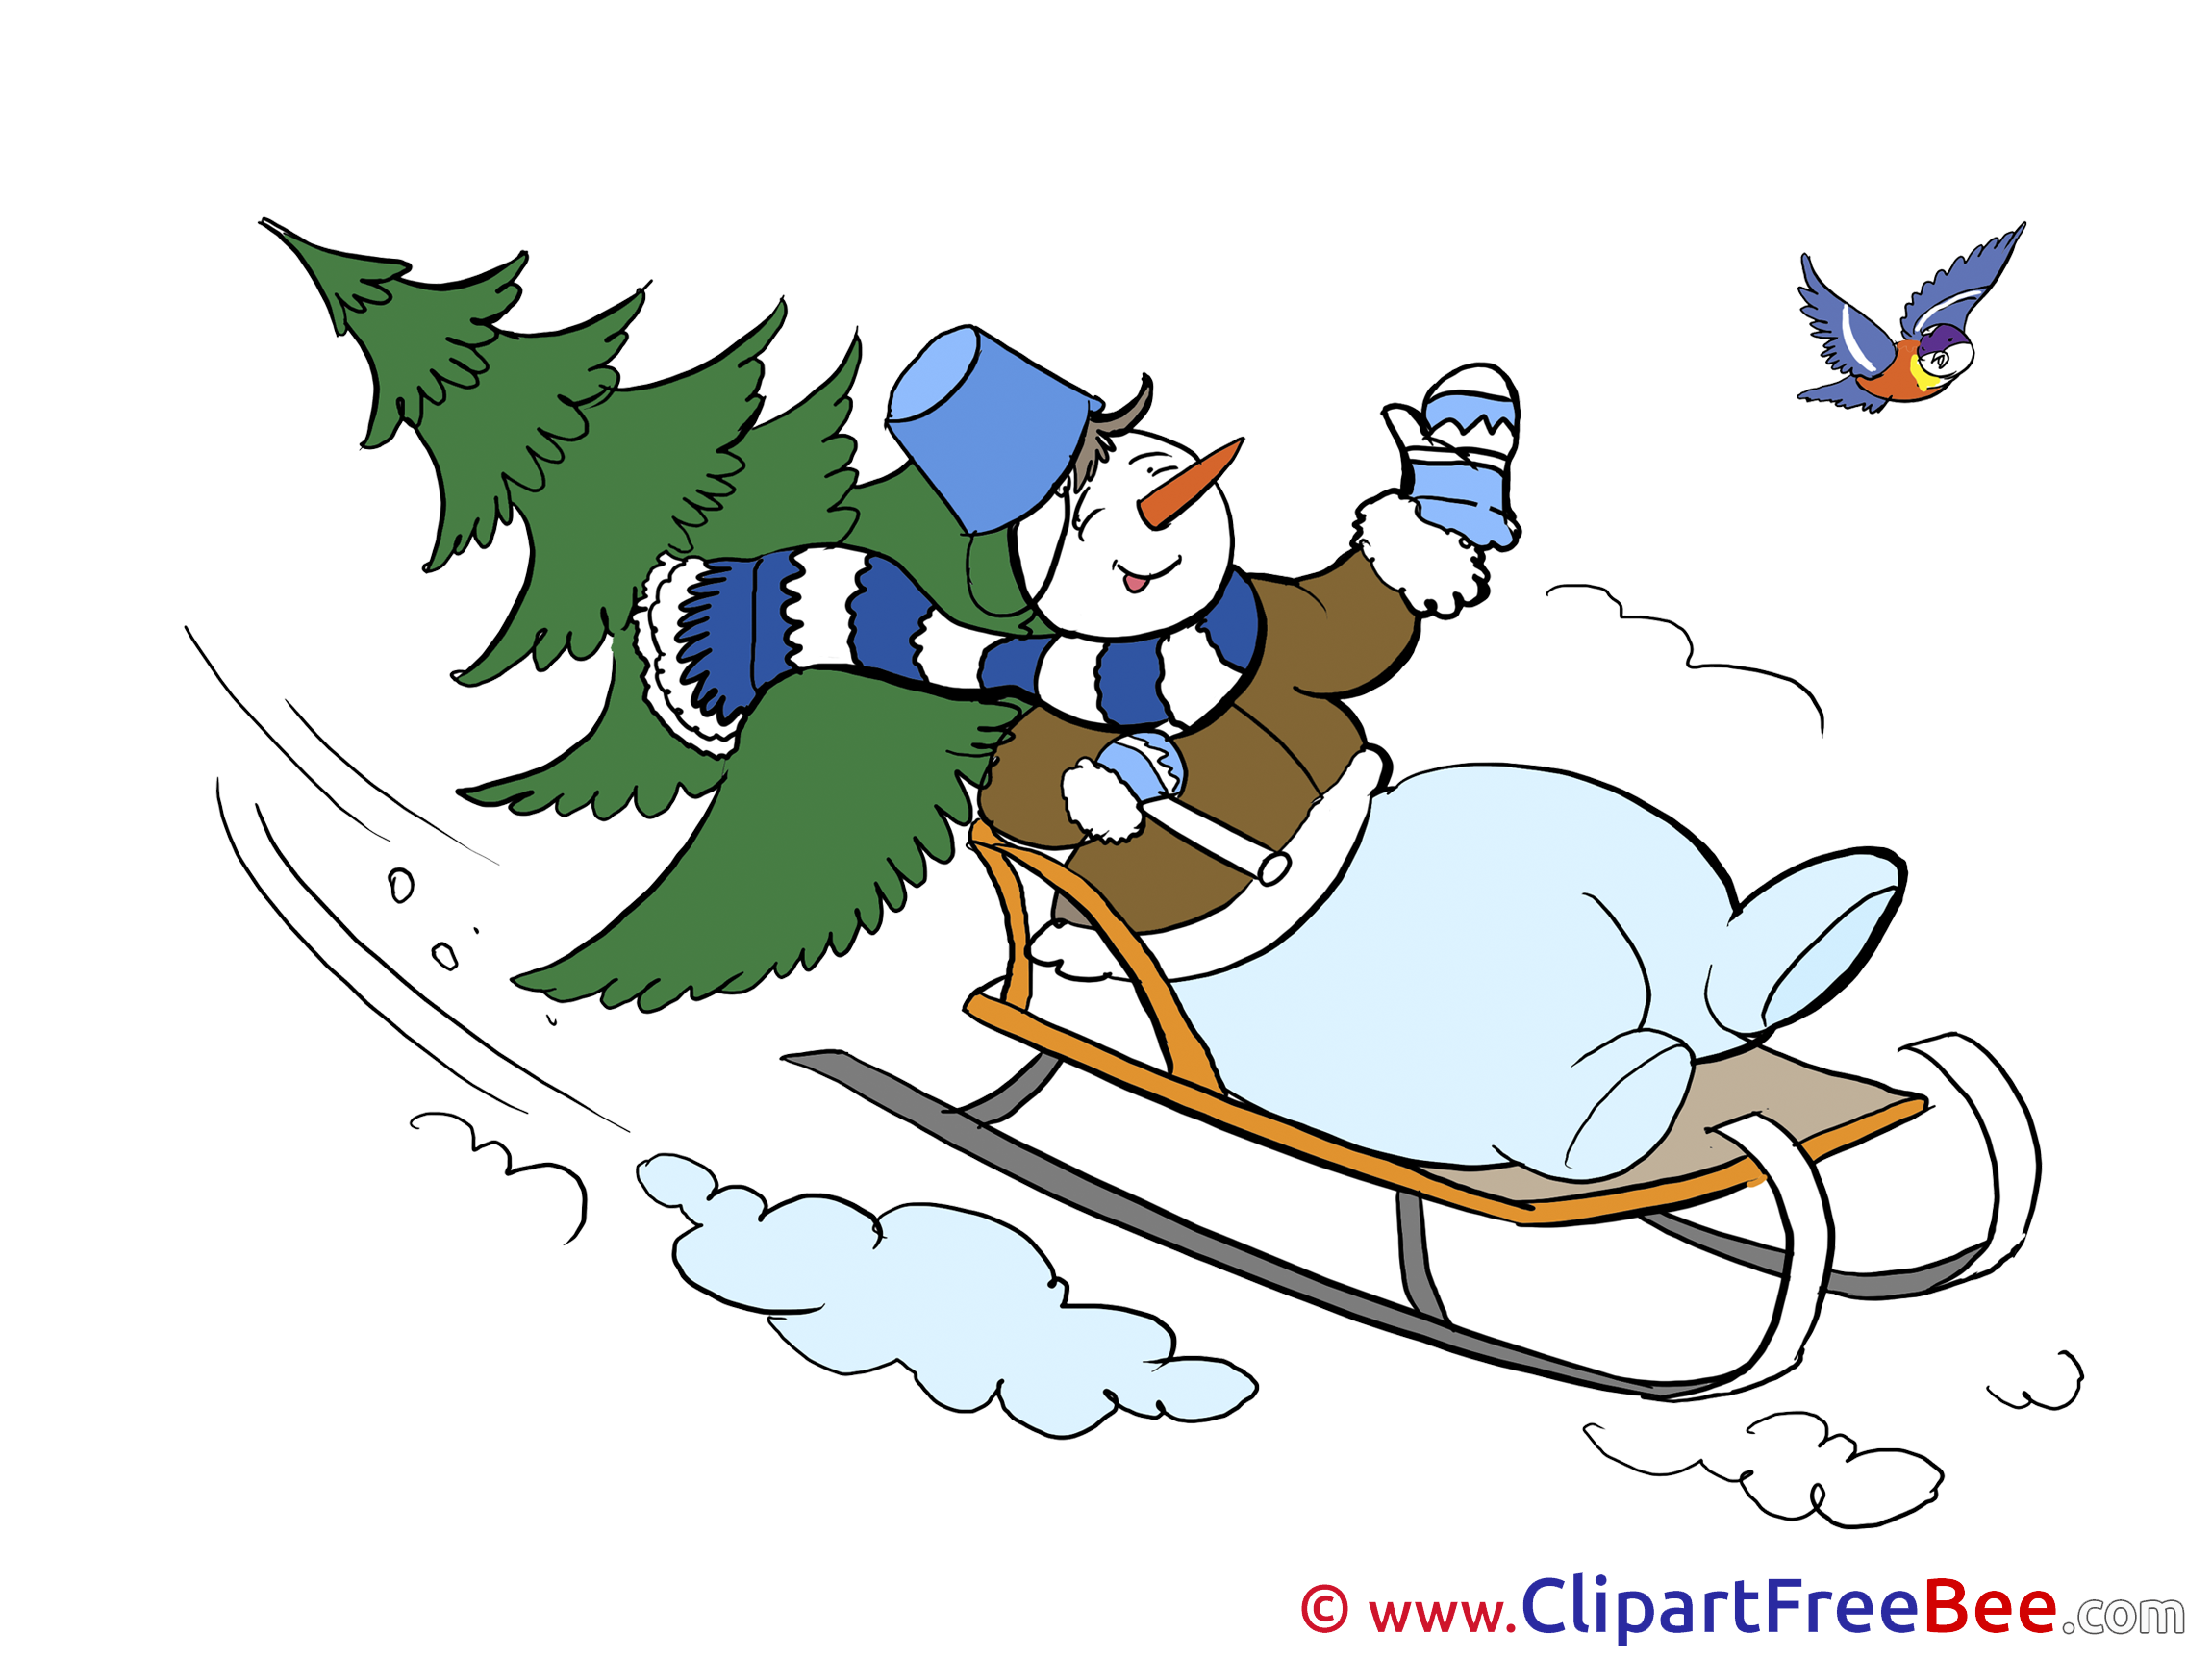 Snowman clipart sledge Cliparts Sledge free Snowman Winter